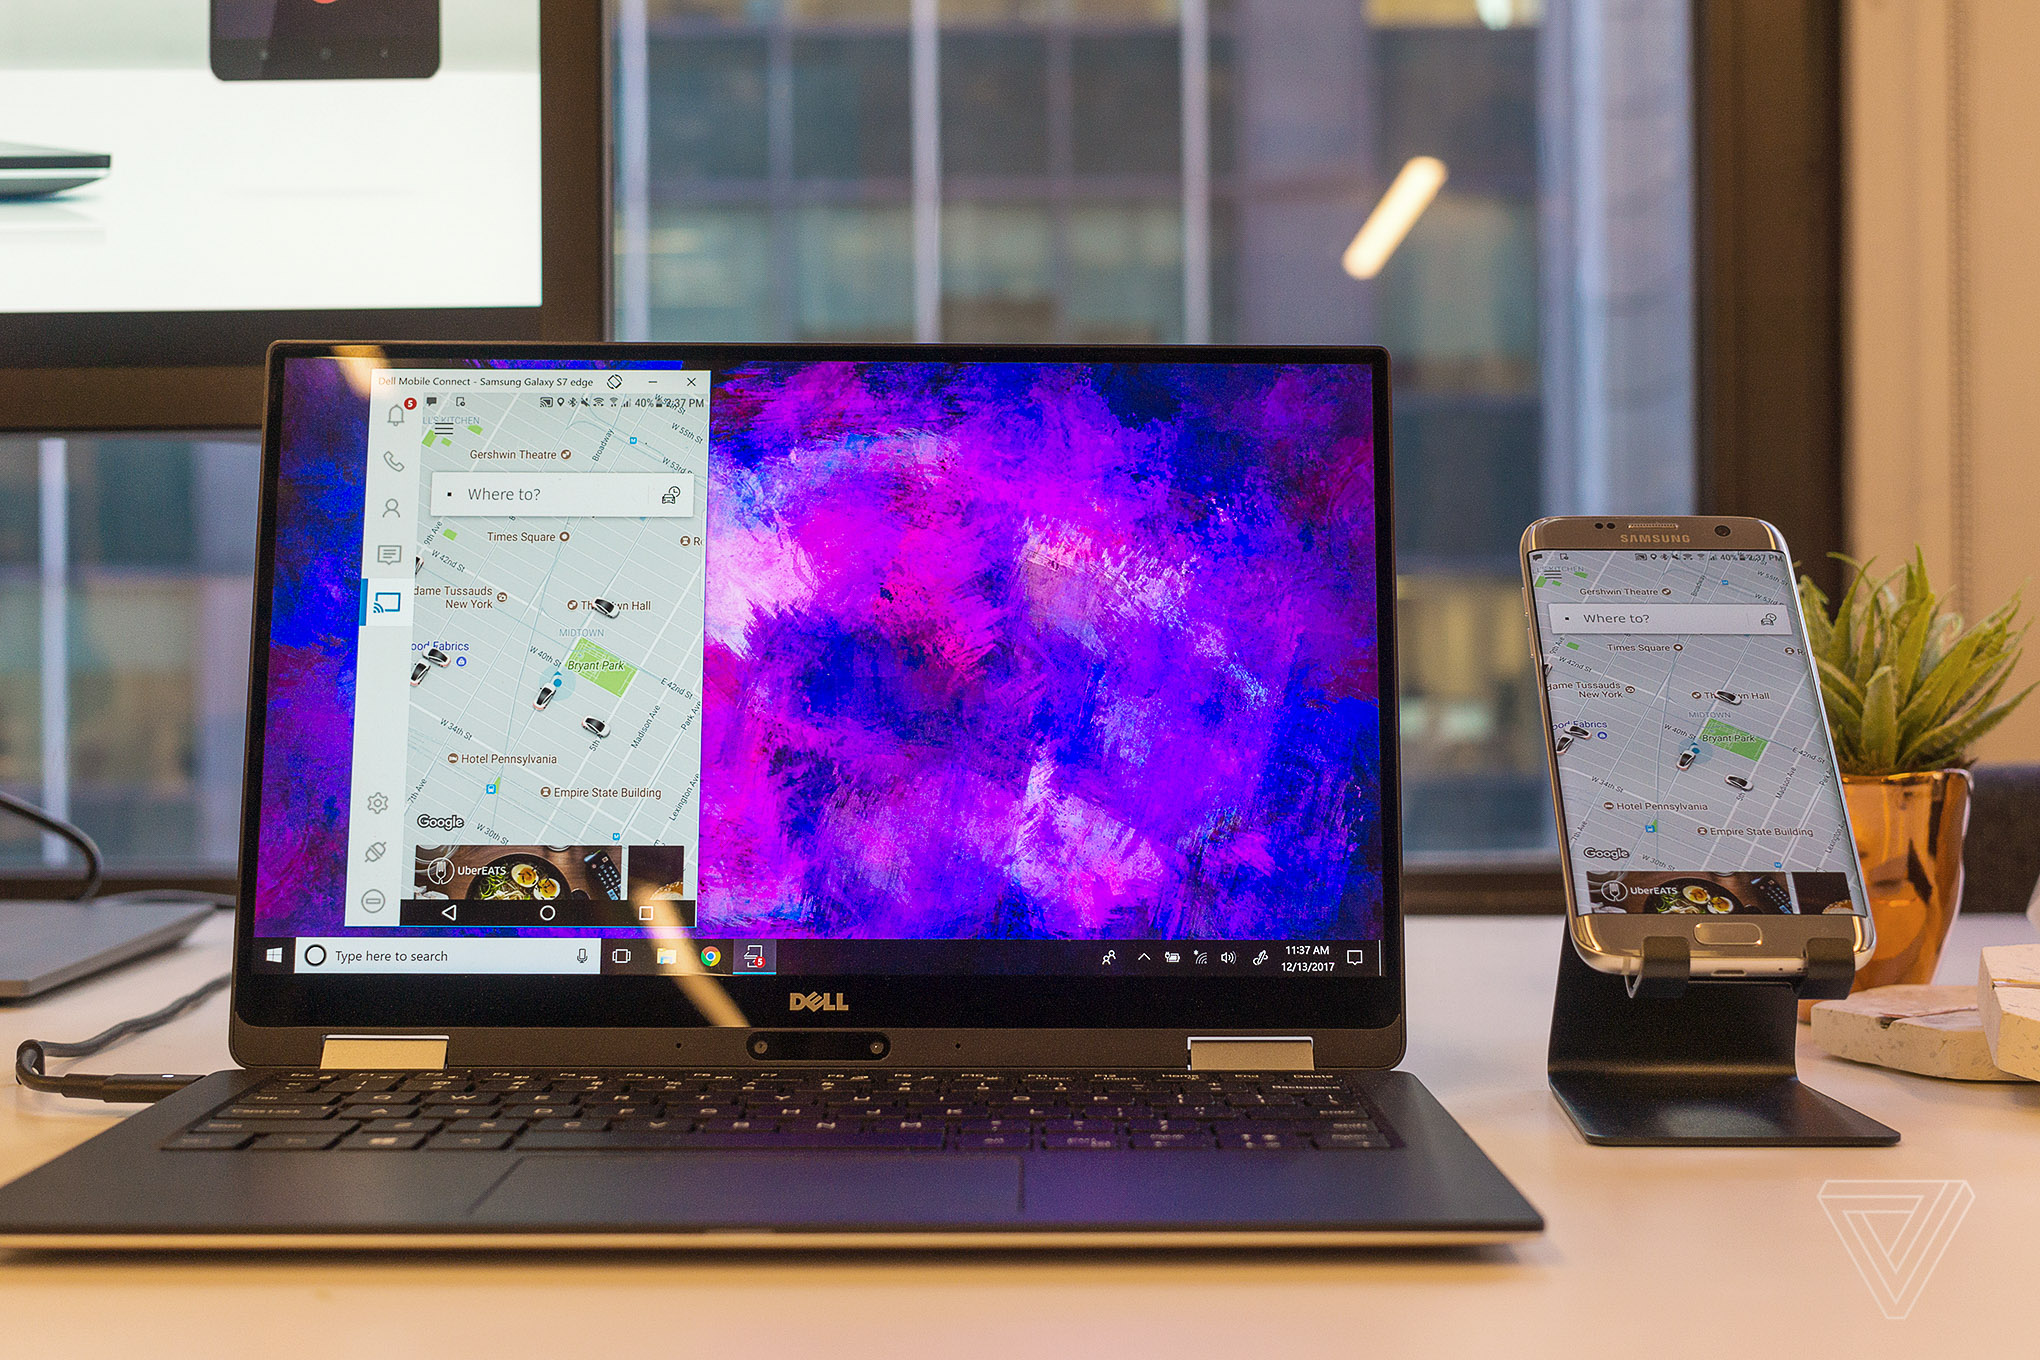 Dell's new PCs will display incoming phone calls and text messages